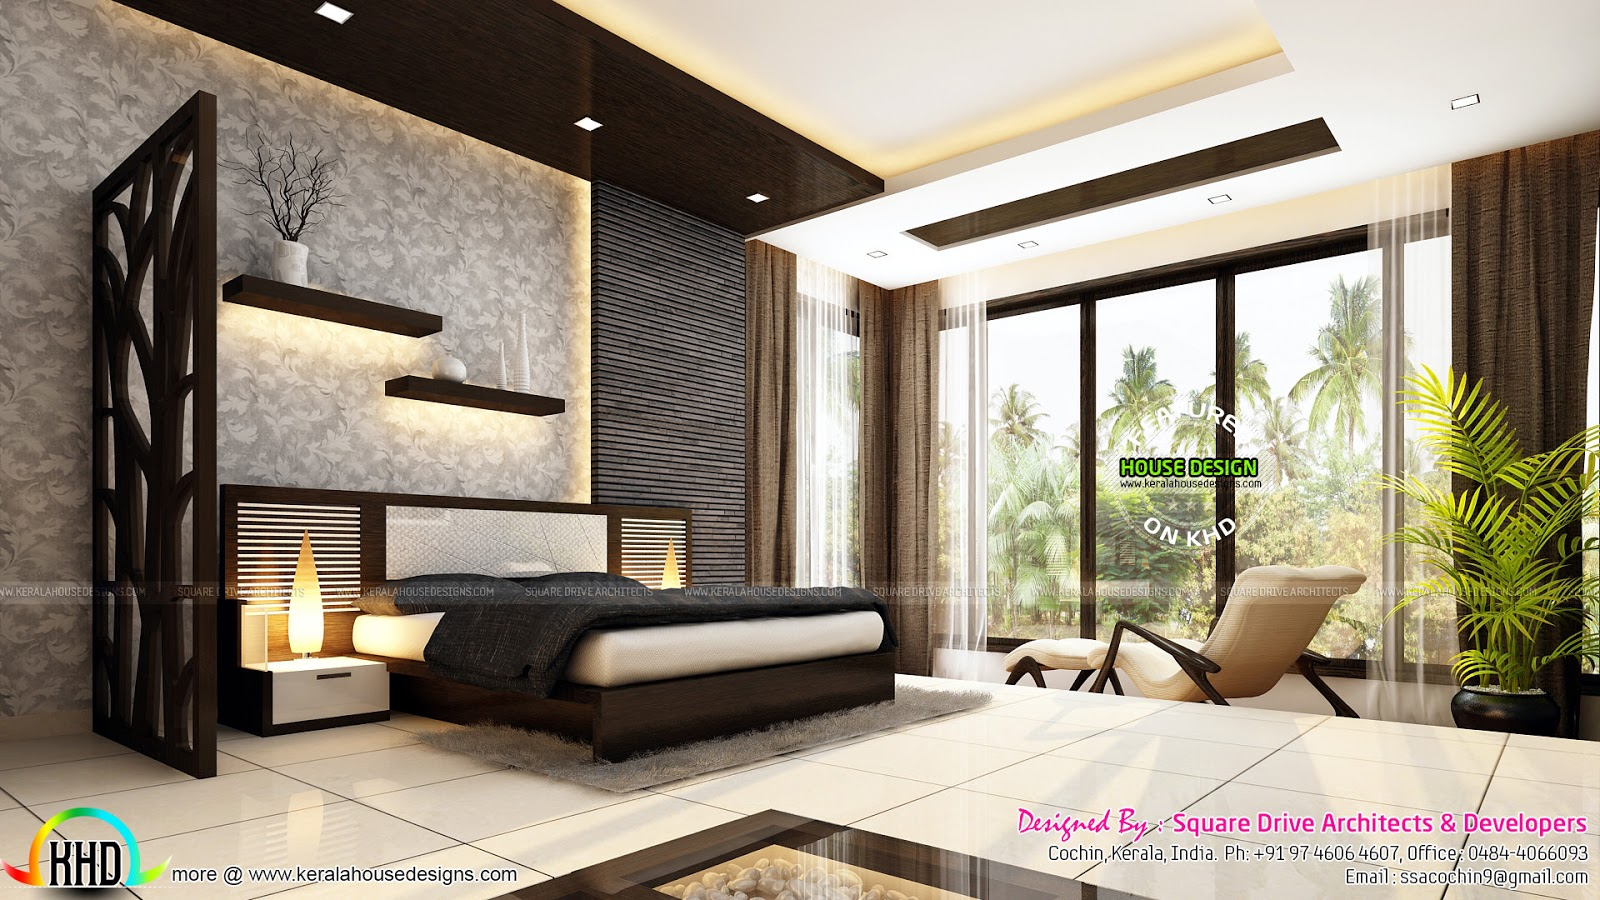 Very beautiful modern interior designs kerala home for Beautiful interior design